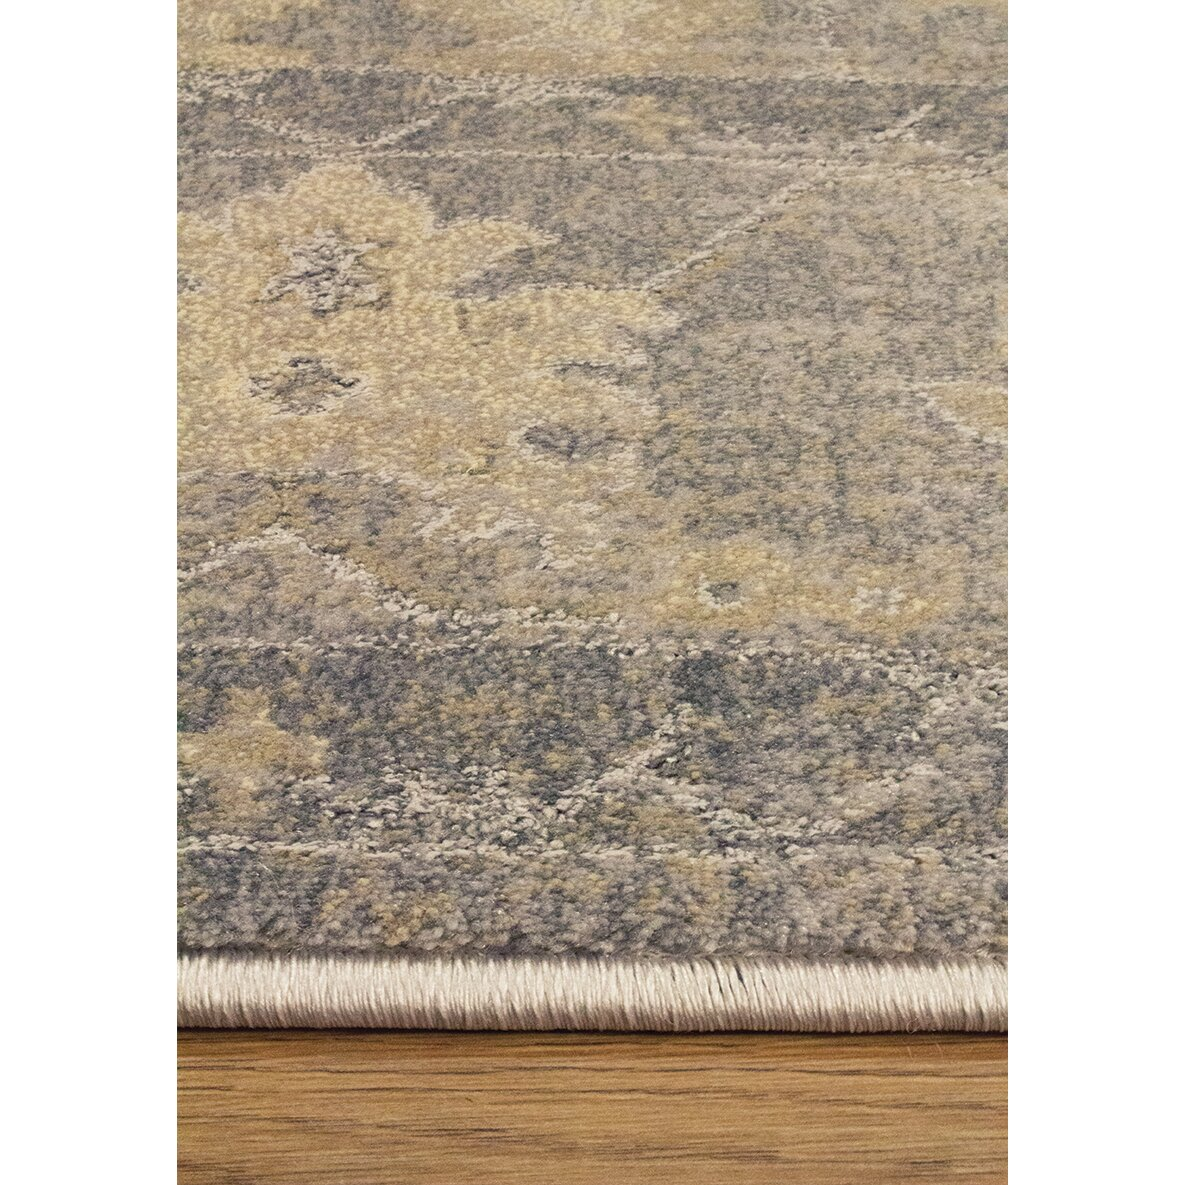 Gray and beige area rug beige and gray area rugs for Grey and tan rug